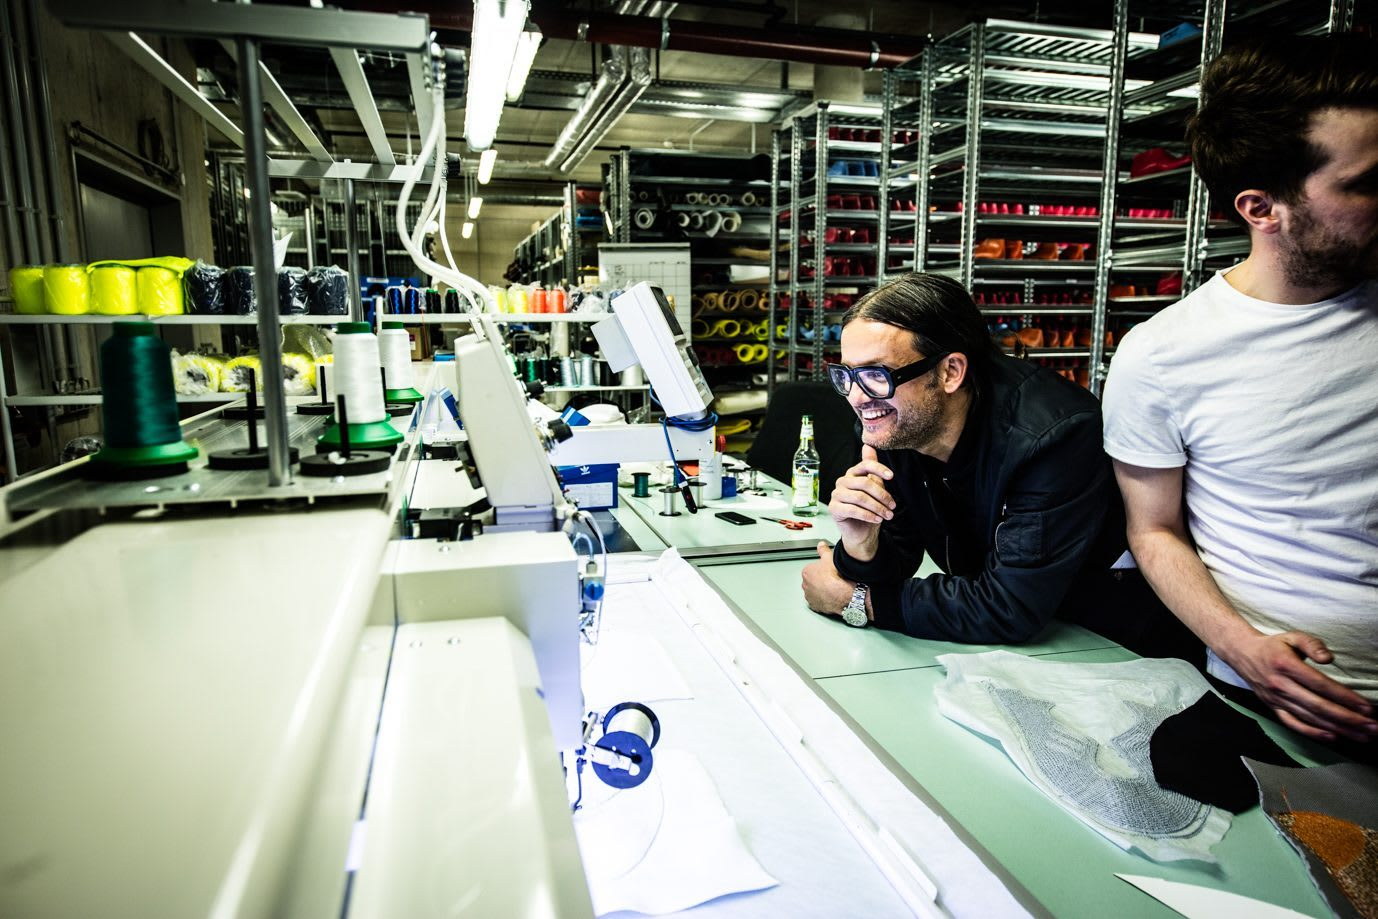 Man wearing black framed glasses smiling and looking at materials, teamwork, sustainability, Parley for the Oceans